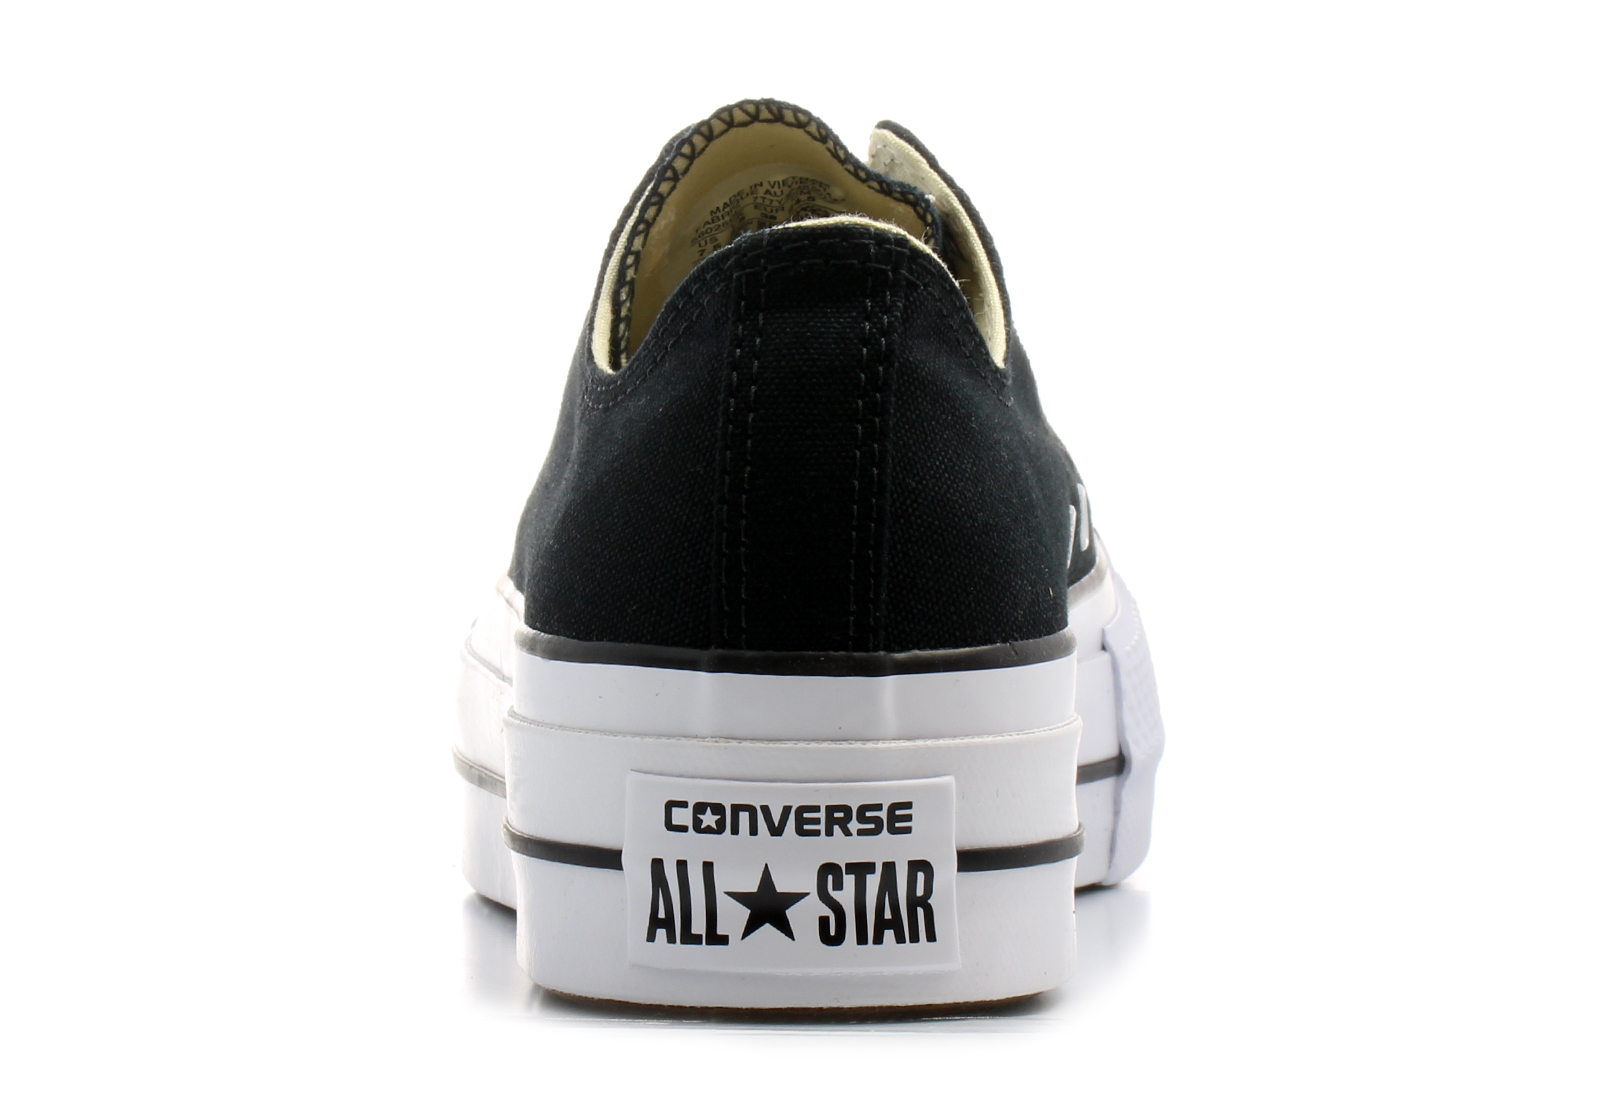 Converse Casual Crna Patike Chuck Taylor All Star Lift Office Shoes Srbija